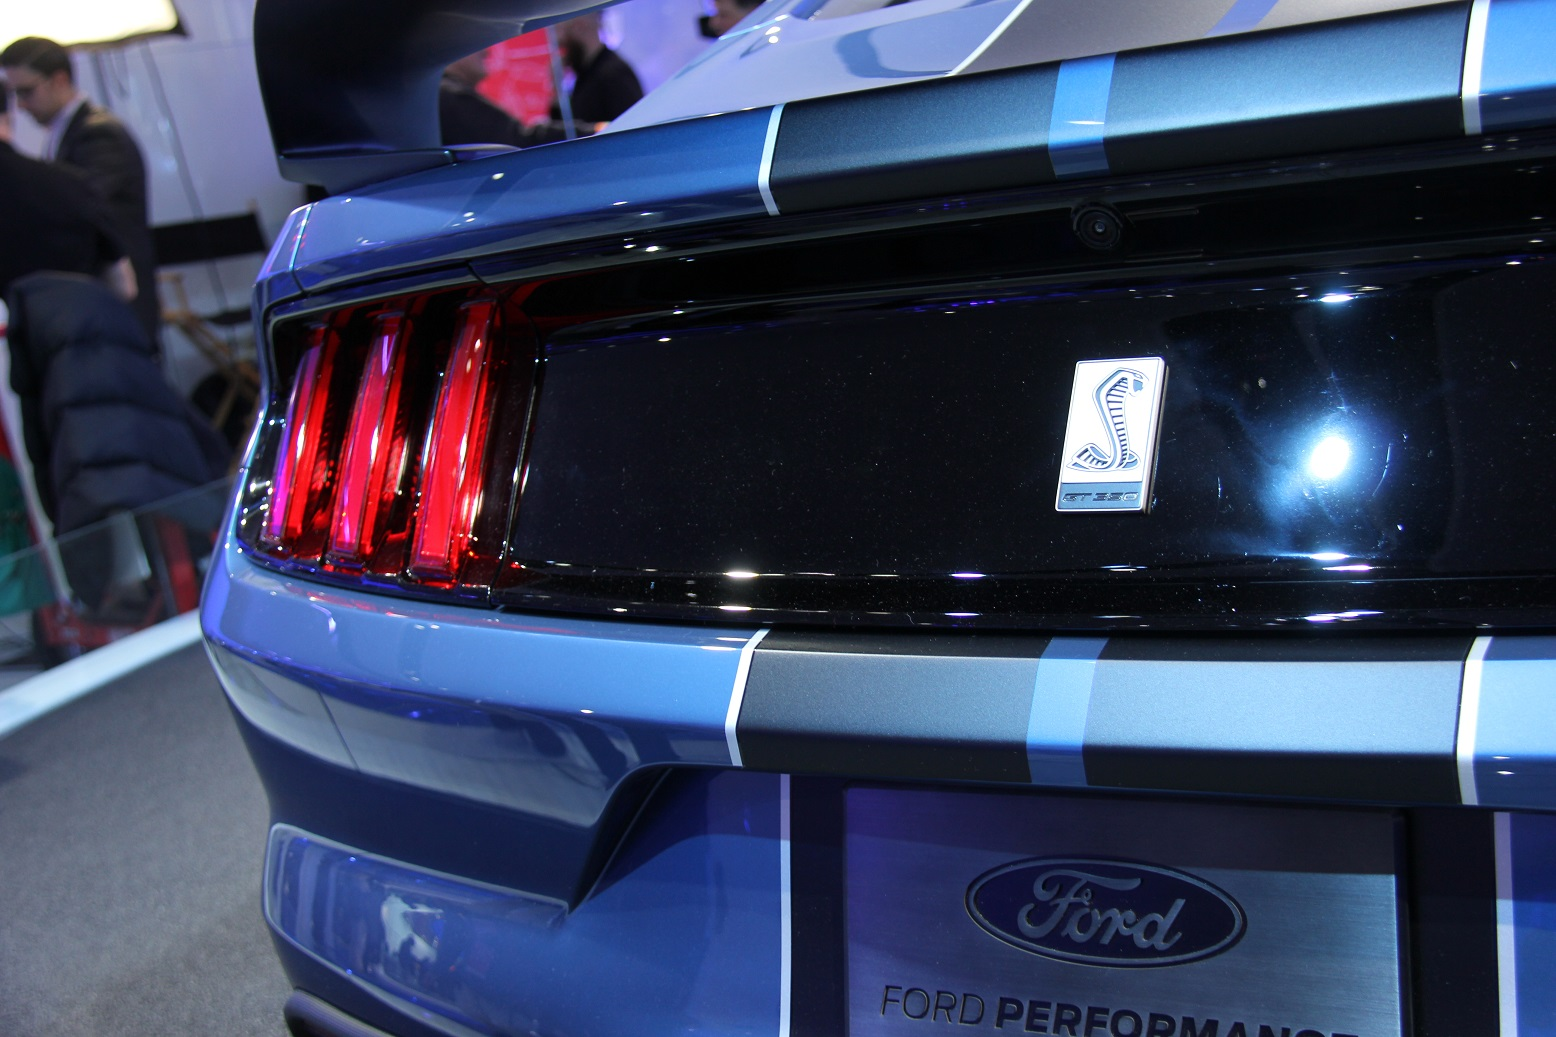 2016 Ford Mustang Shelby Gt350r Rear Lamp (Photo 47 of 47)